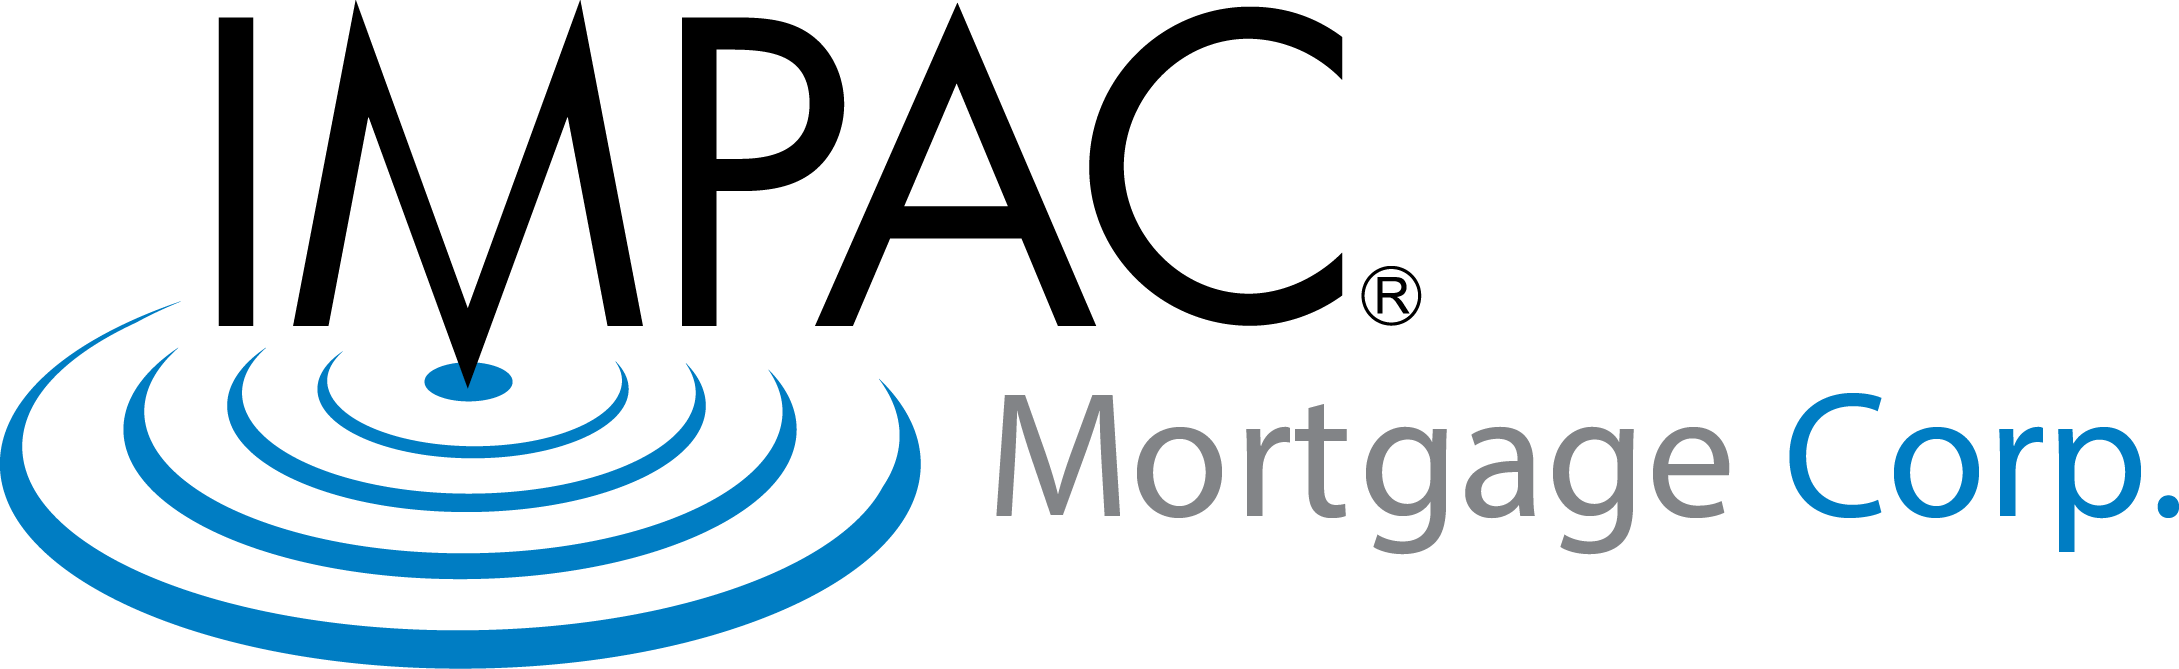 Impac Mortgage Corp., has announced Michael D. Falce is returning to the Irvine, Calif.-based company as director of national correspondent sales